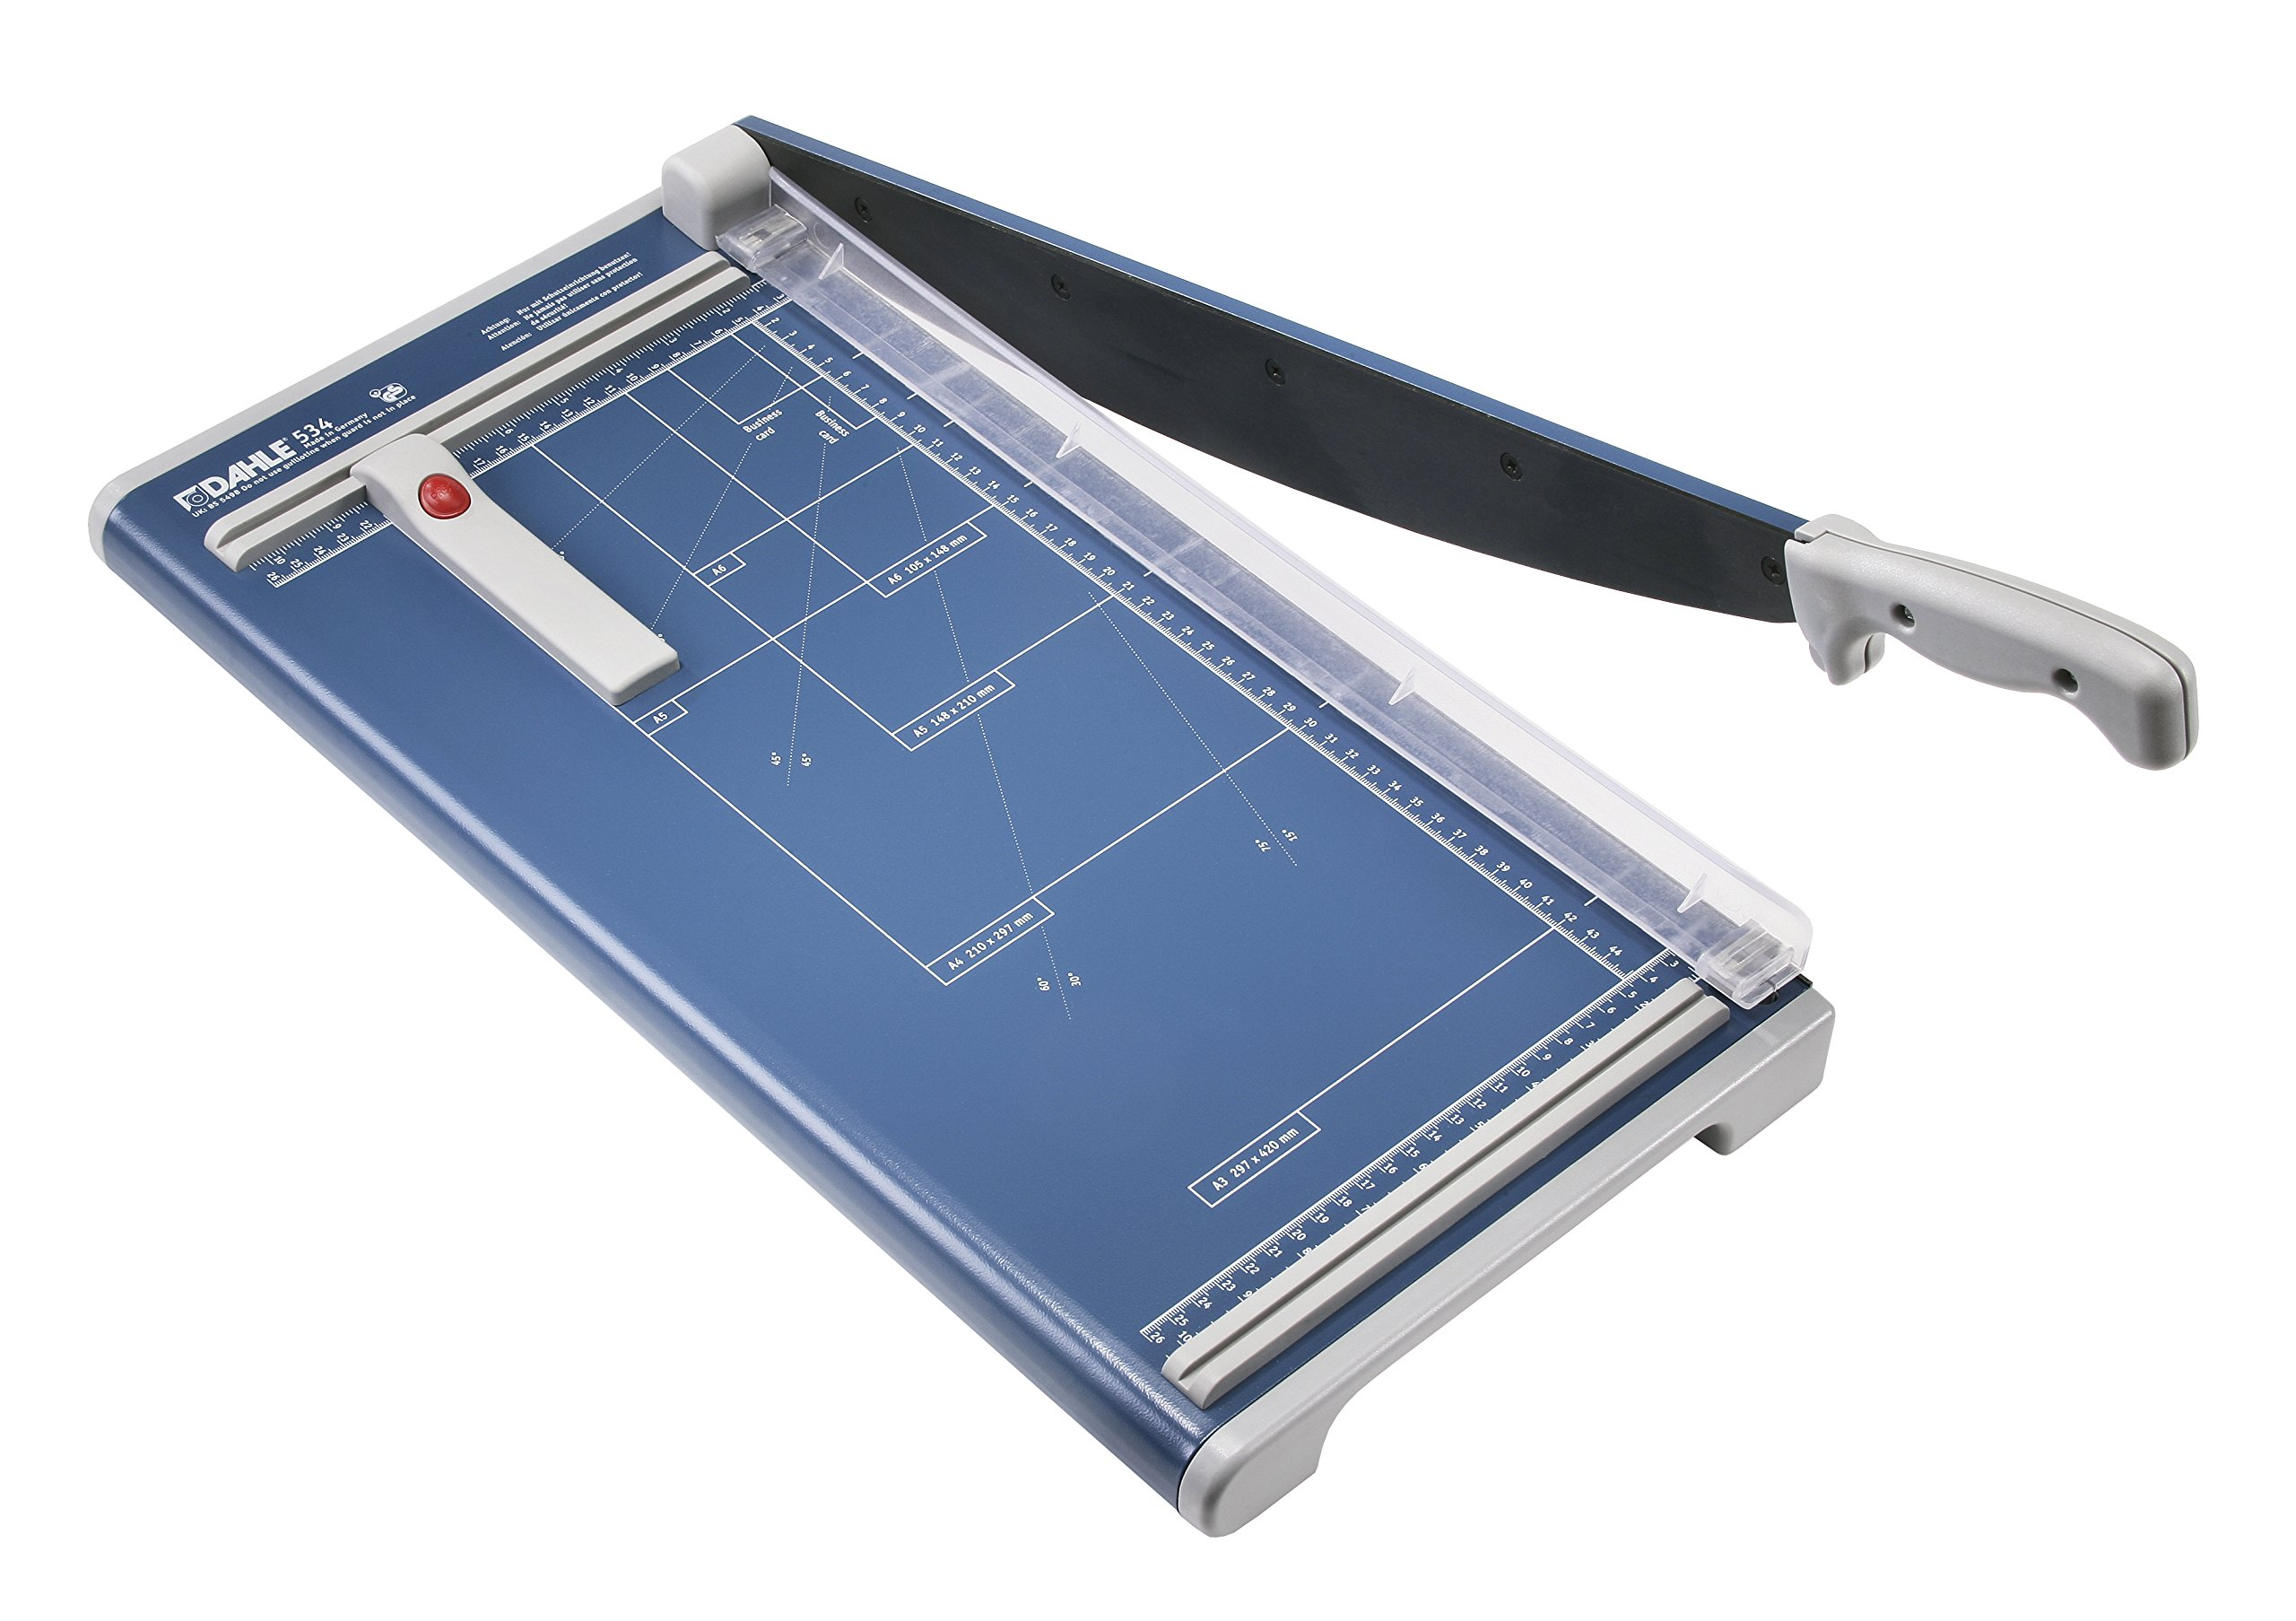 Dahle 534 Professional Guillotine Lever Style Paper Trimmer, 18'' Cut Length, 15 Sheet, Solingen Steel Self-Sharpening Blade, Safety Features, Automatic clamp, Sturdy Metal Base, Paper Cutter